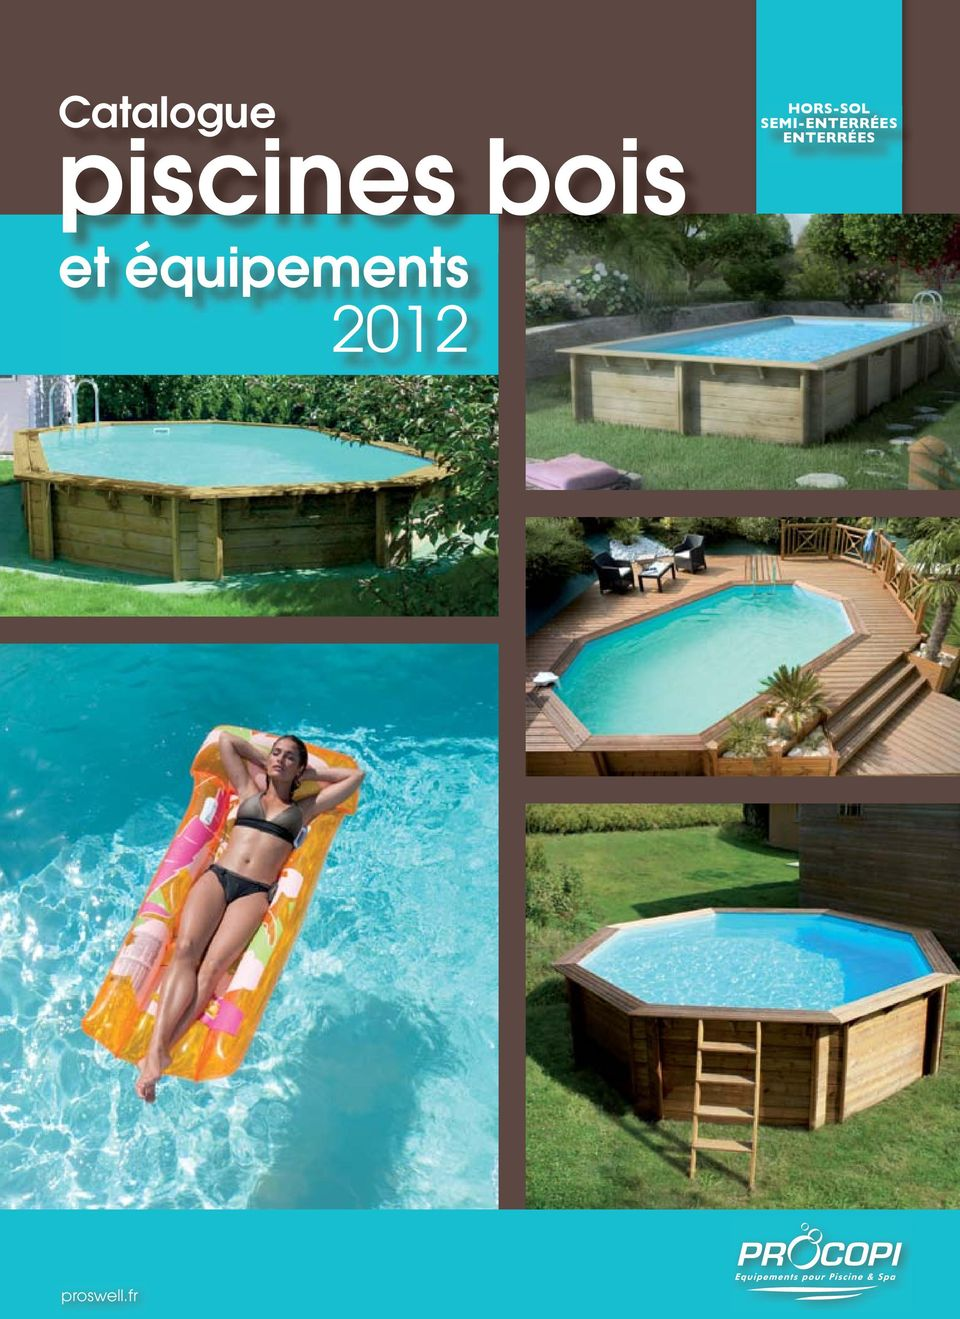 Catalogue hors sol semi enterr es enterr es piscines for Catalogue piscine bois